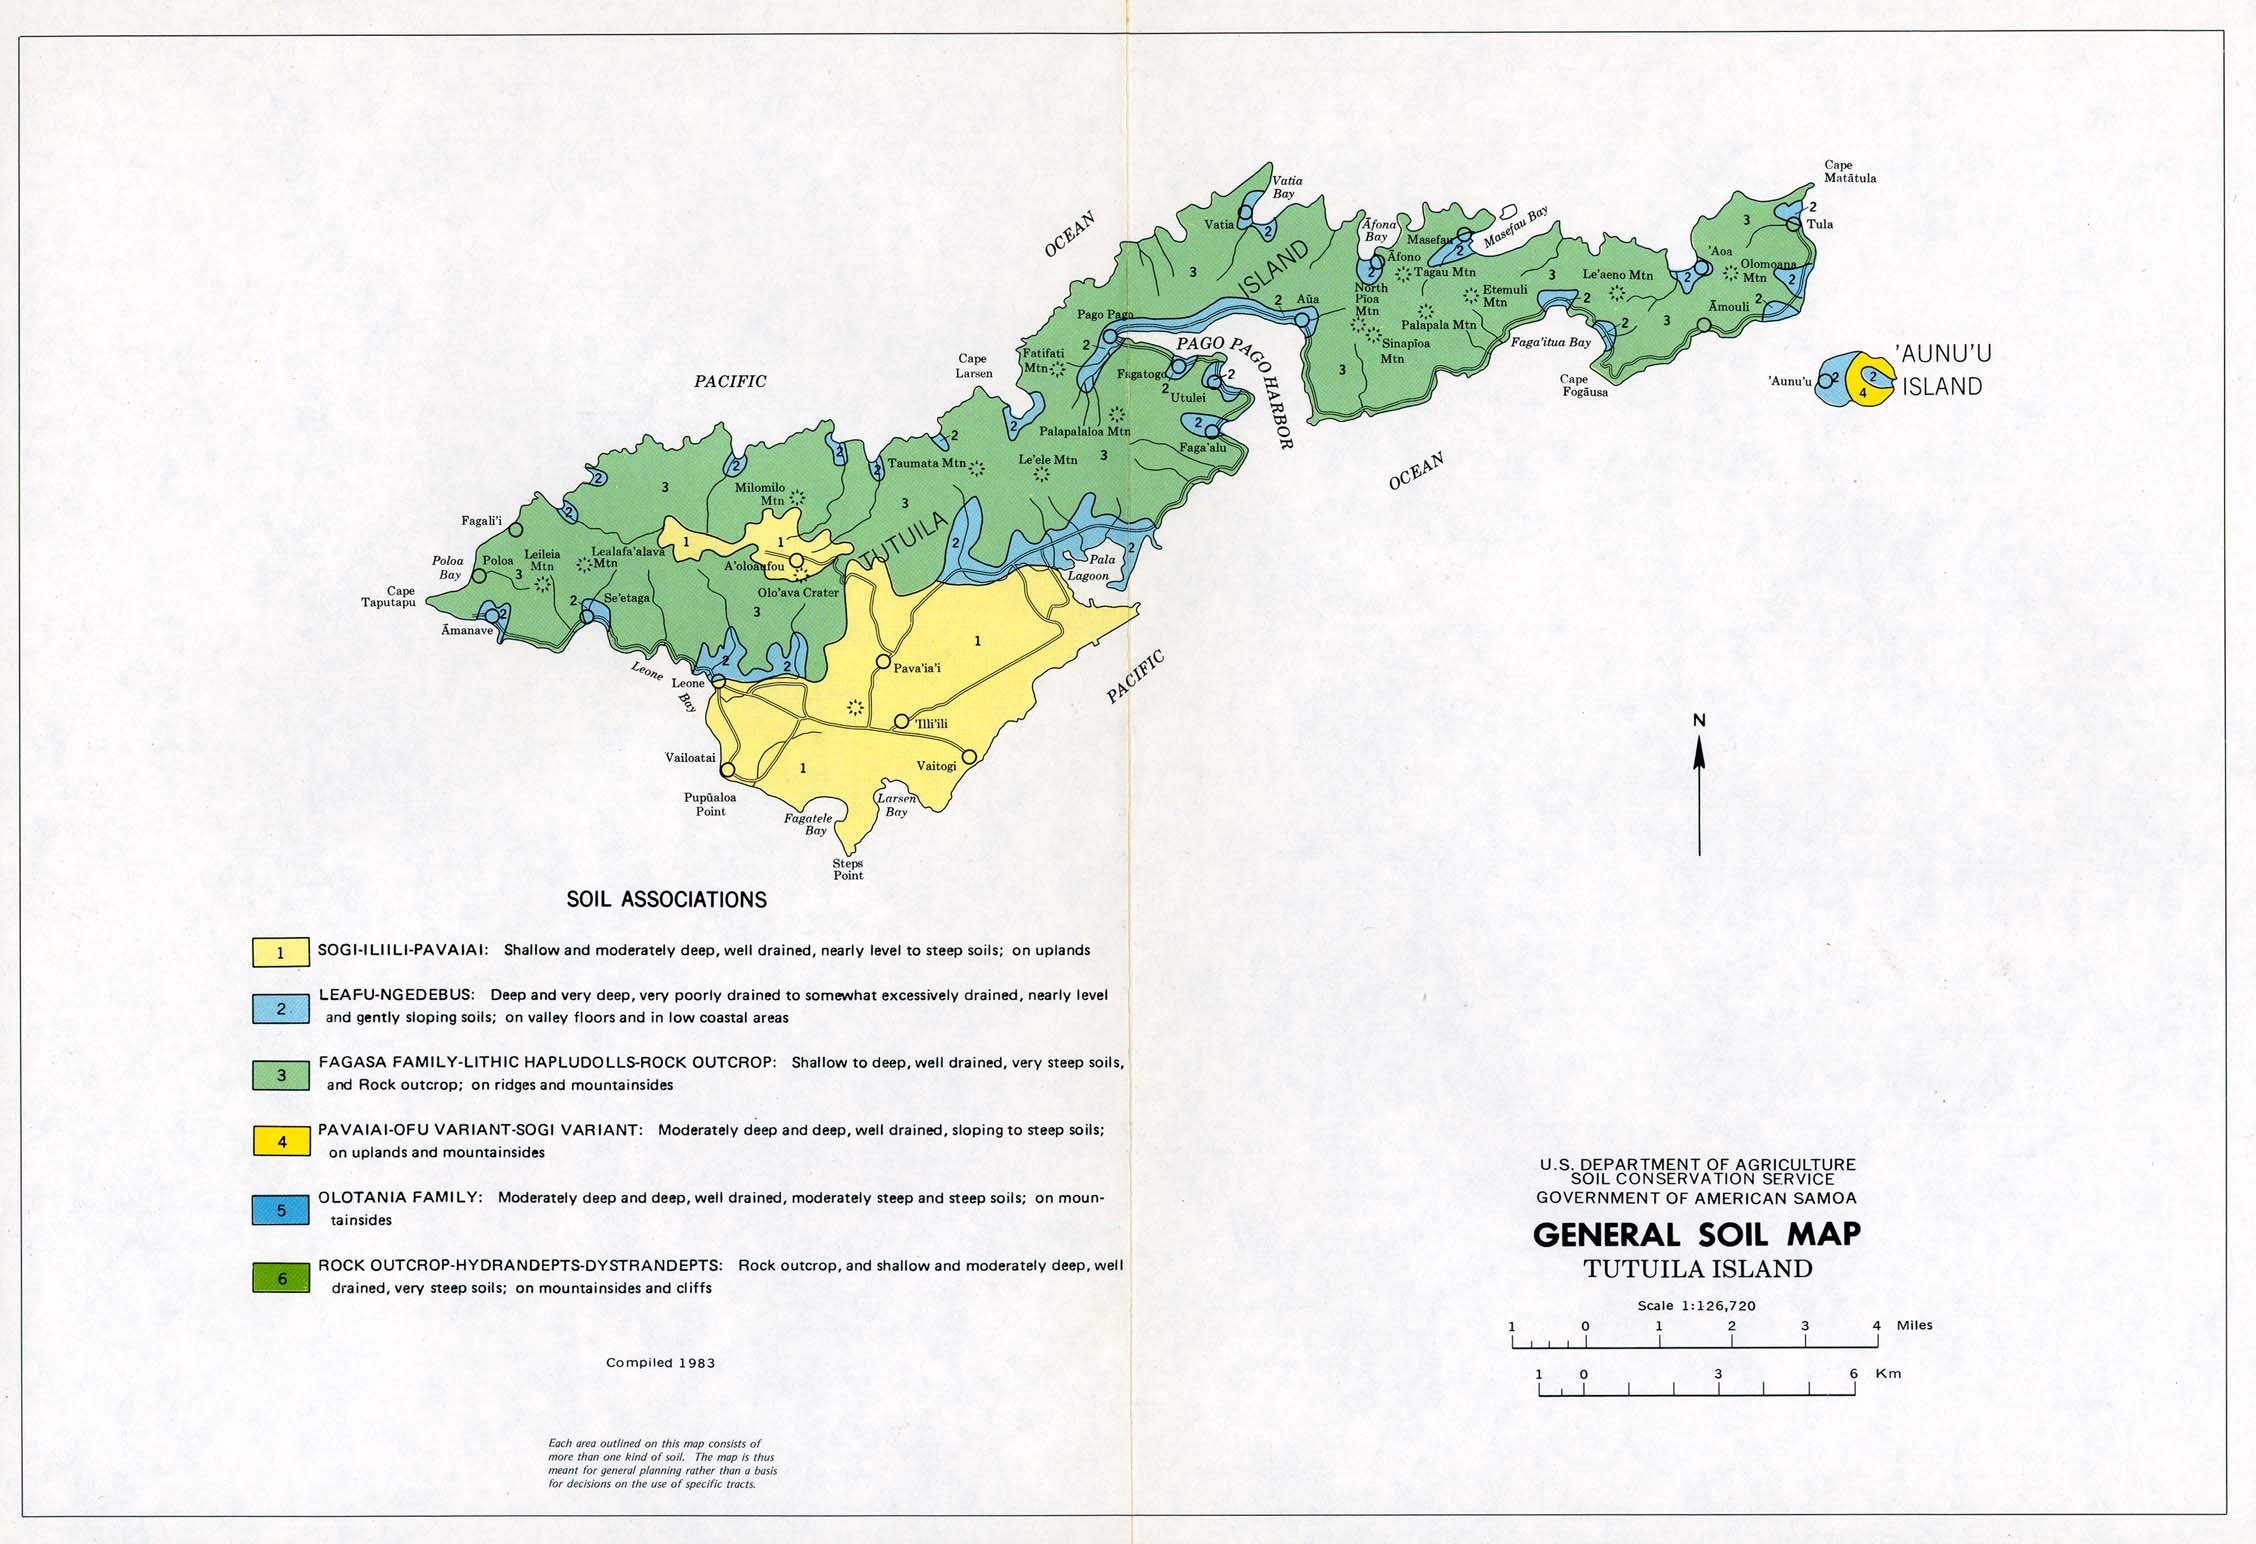 American samoa maps perry casta eda map collection ut for American soil